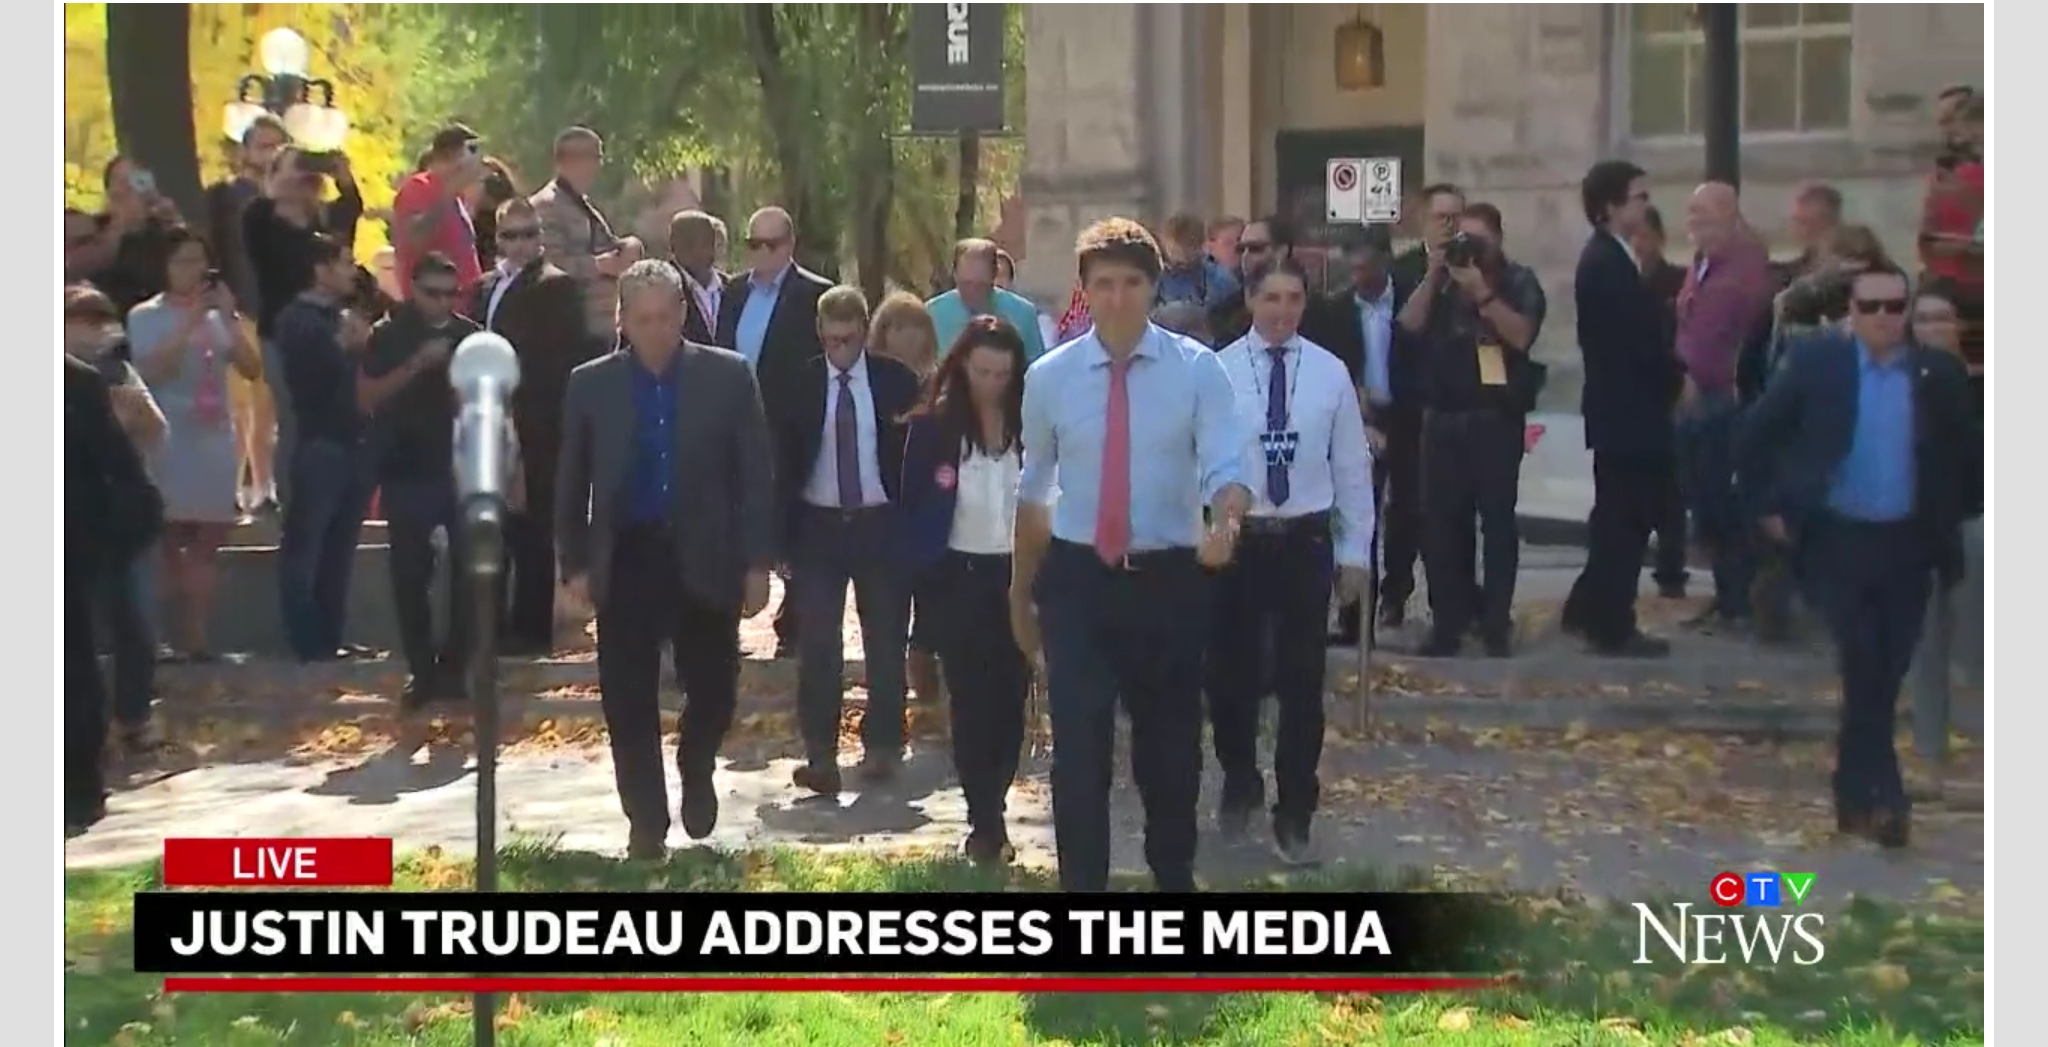 Canadian Prime Minister Justin Trudeau speaks to reporters at a news conferenced in Winnipeg, Manitoba, Sept. 19, 2019. CTV News screenshot